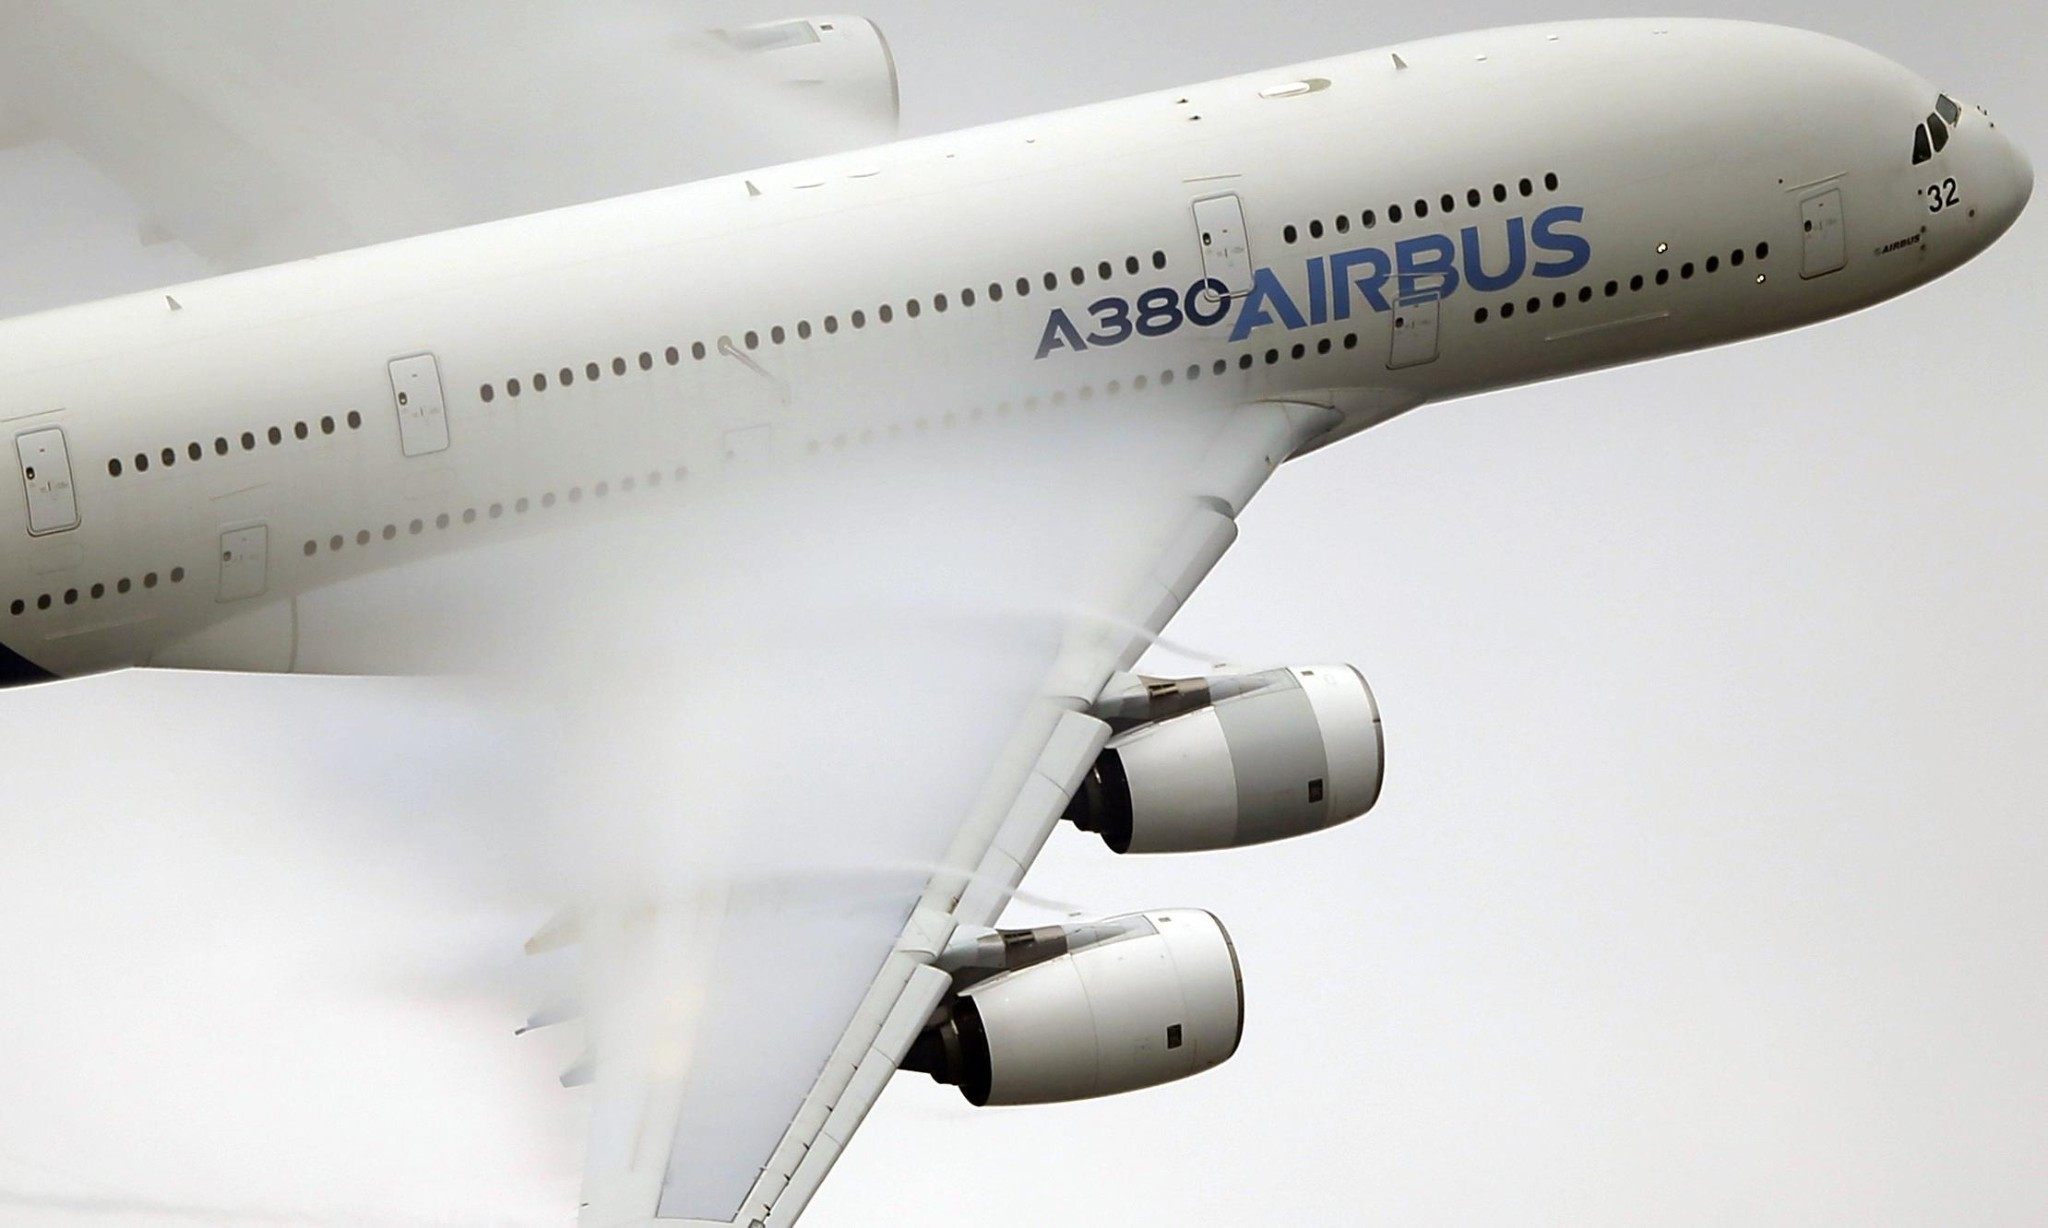 End of the A380 superjumbo? Airbus warns future of plane at risk